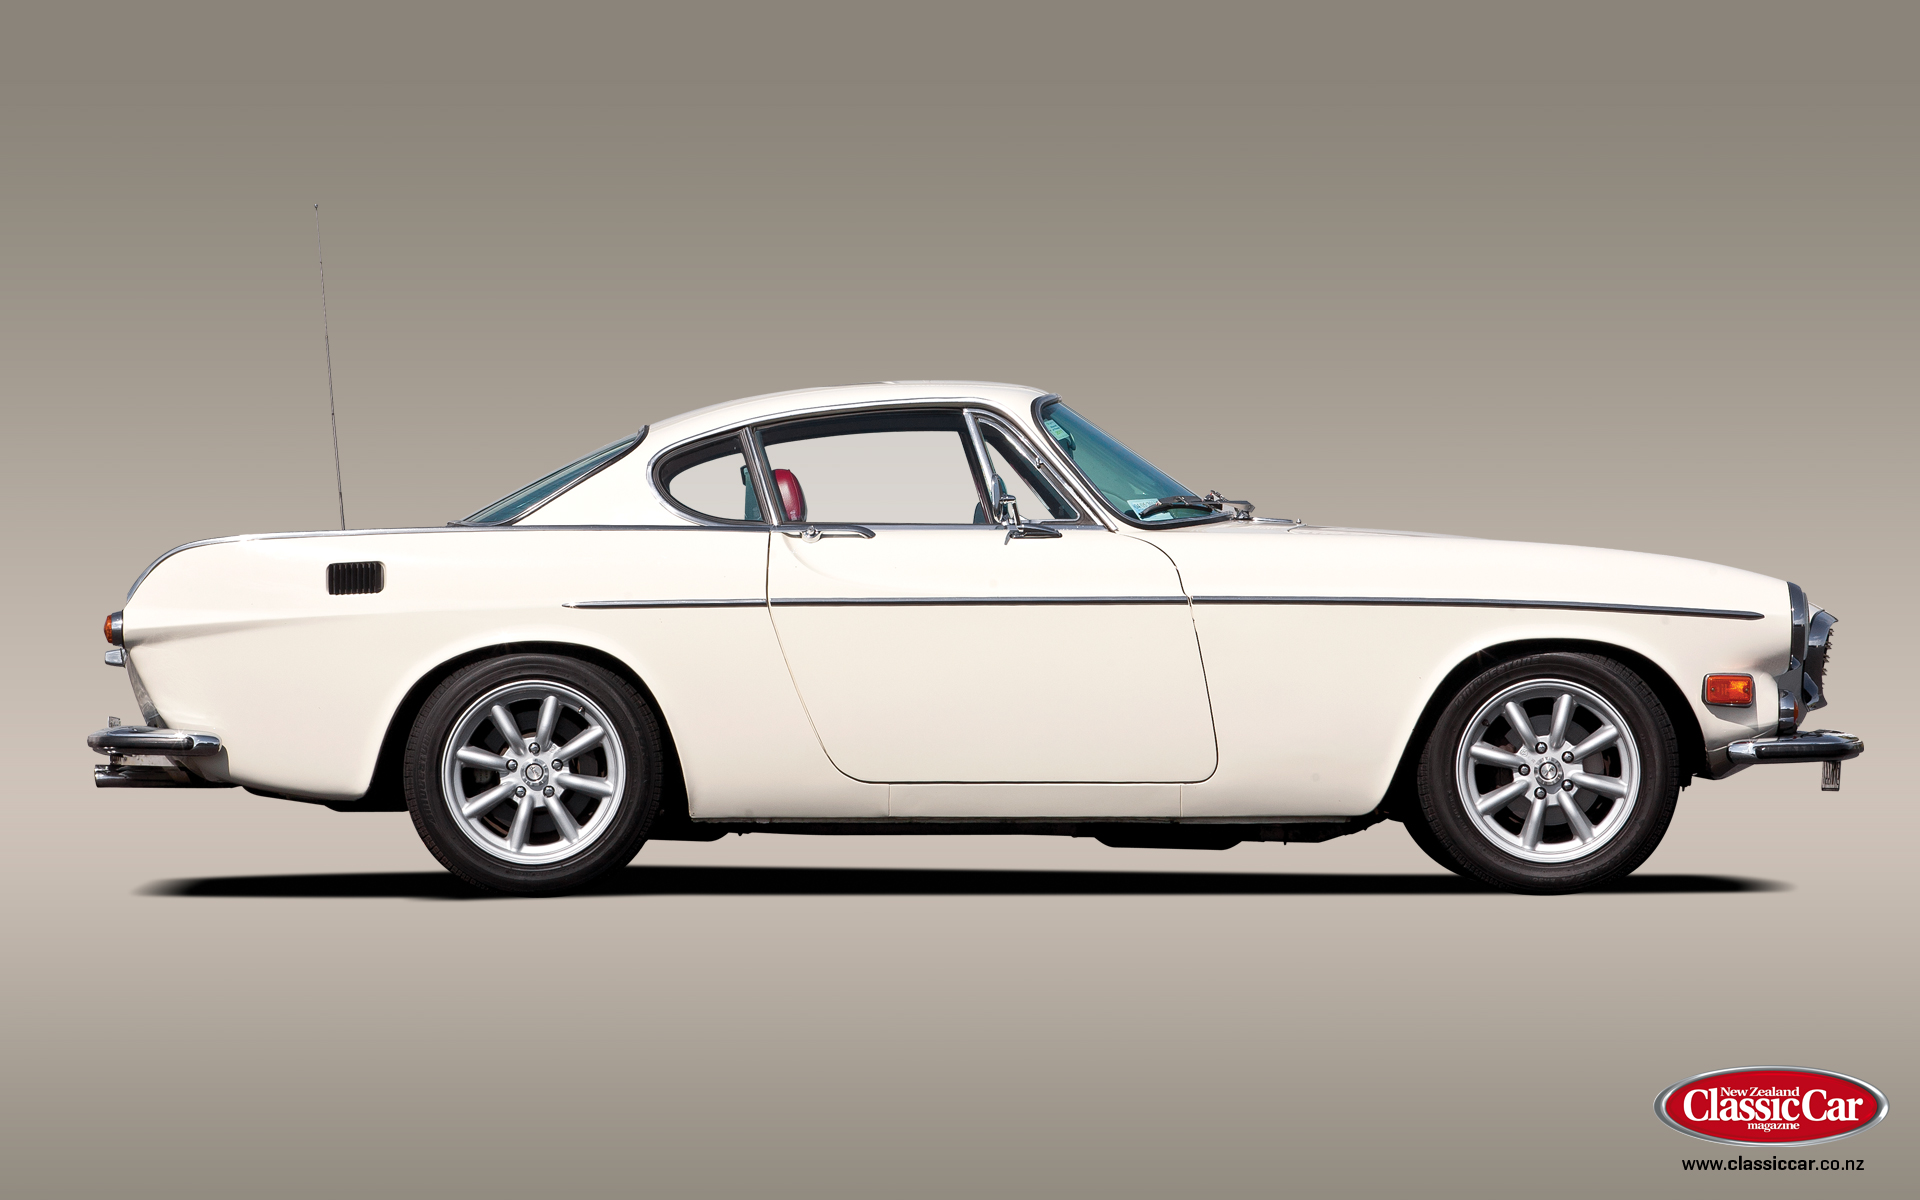 Cross Country Quotes Wallpaper Volvo P1800 Concept Car I Like To Waste My Time